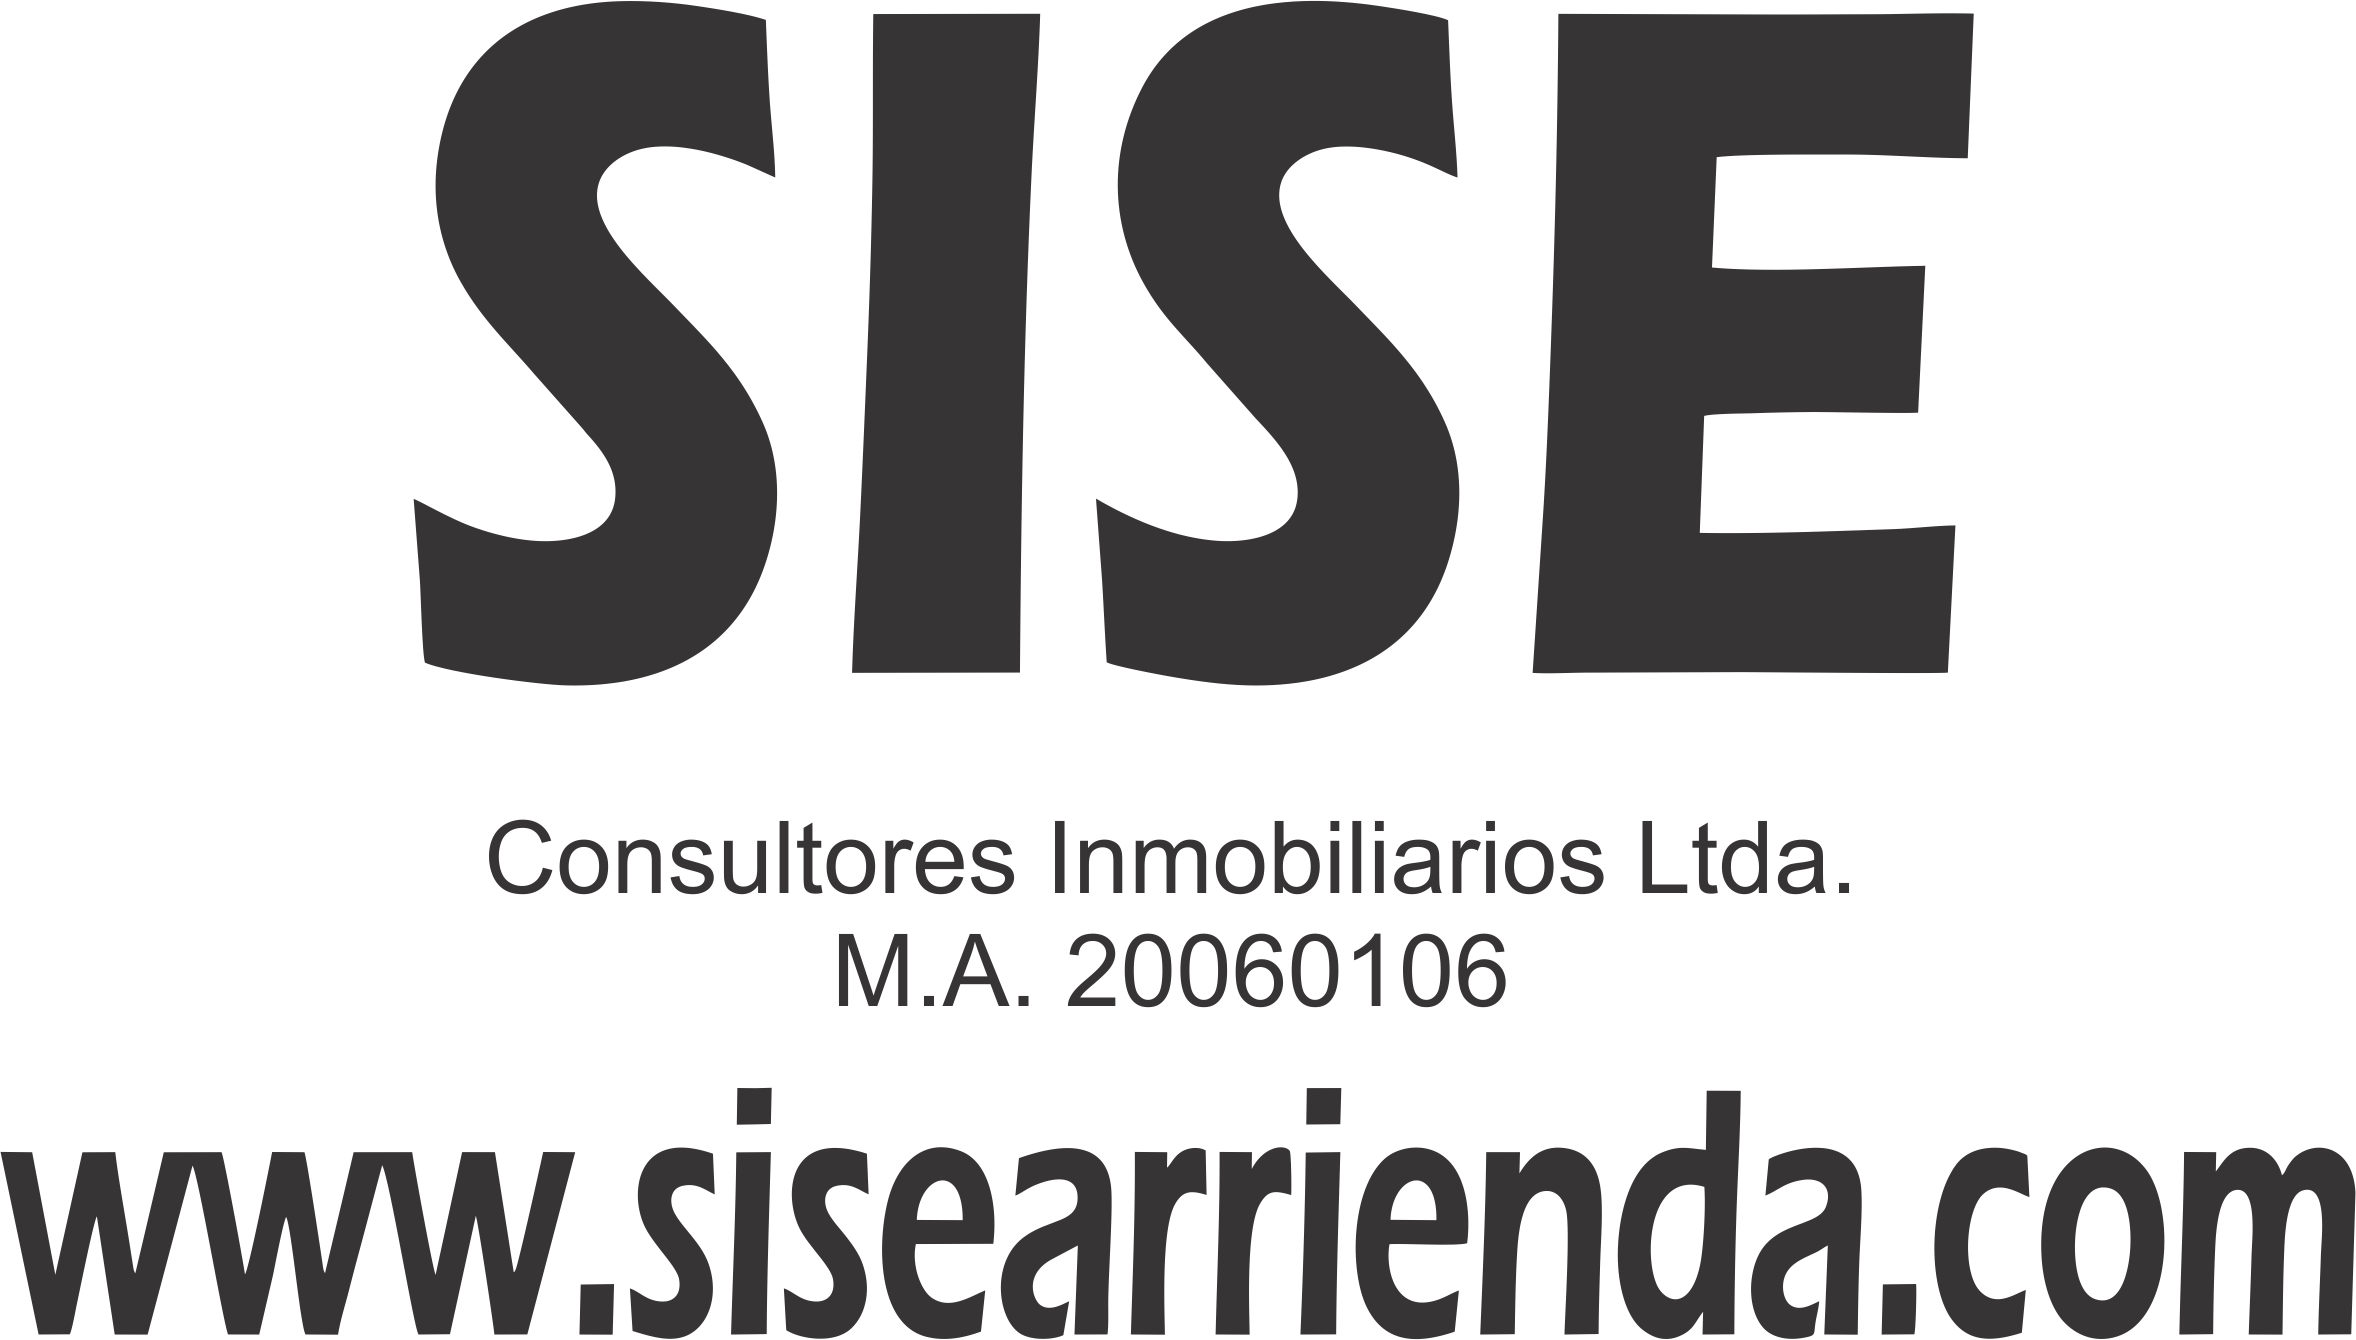 sisearrienda-logo-web